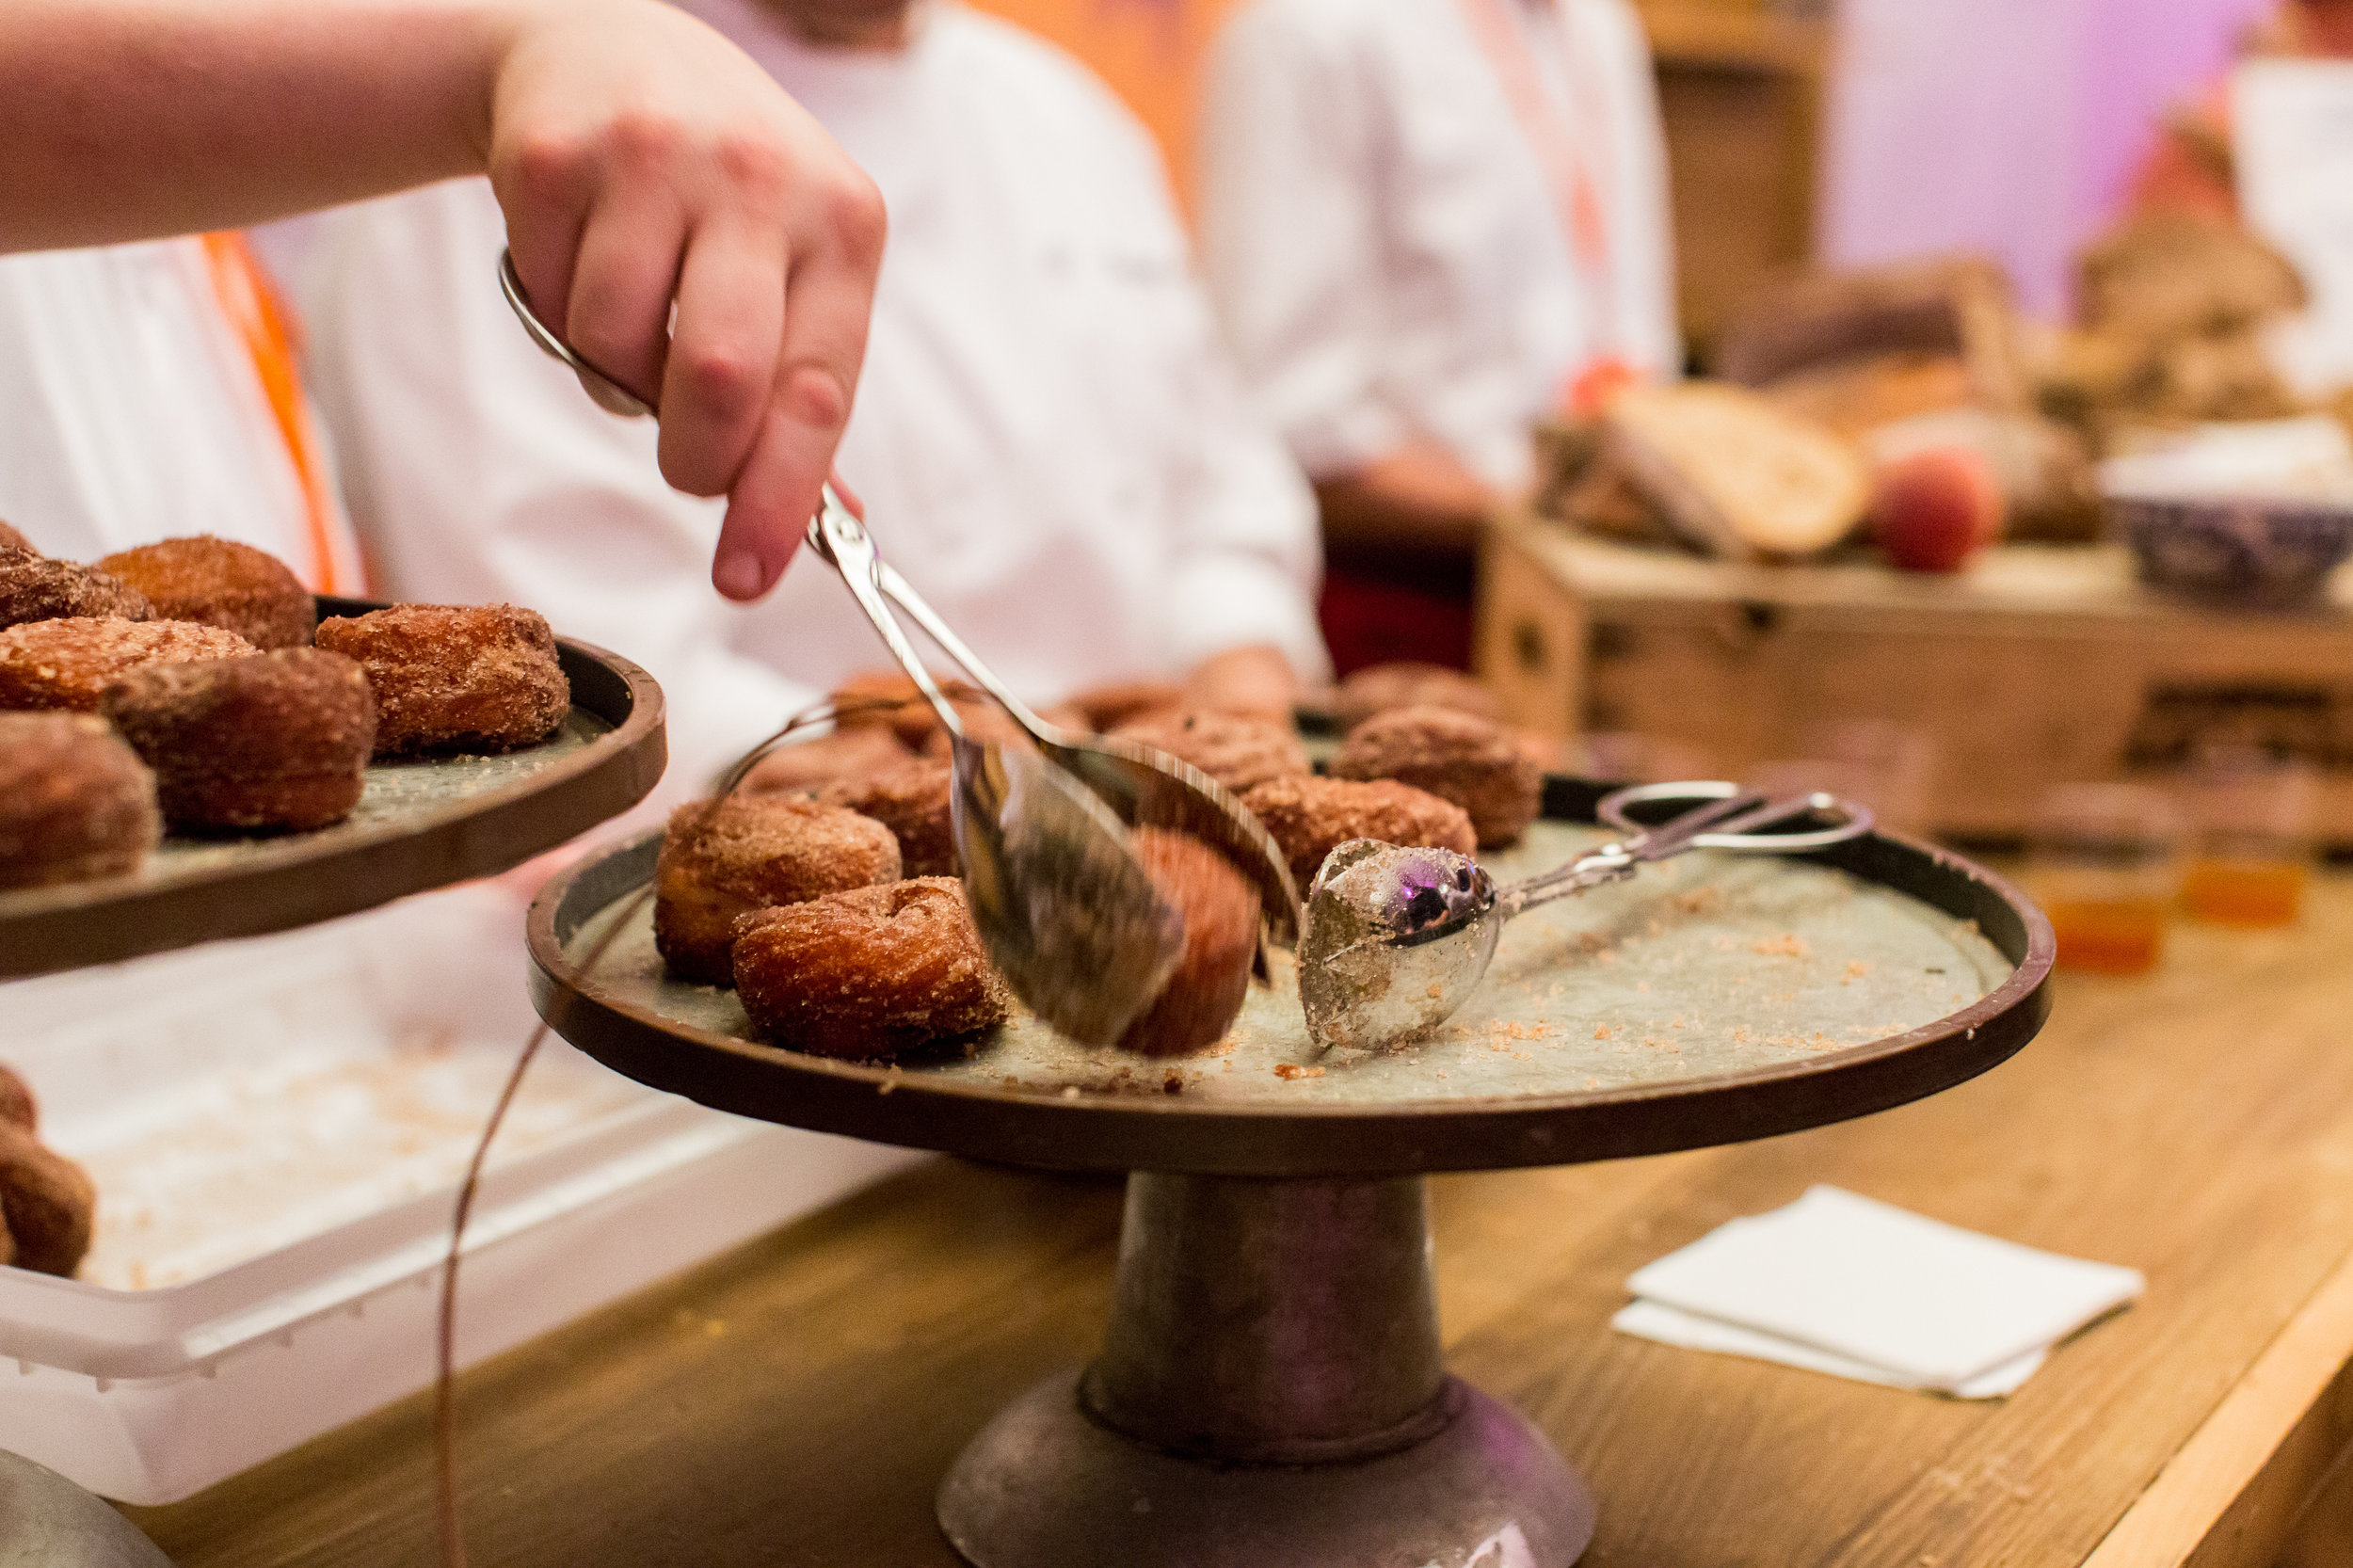 Daily Provisions debuted their cinnamon crullers to Harvest guests in 2016.